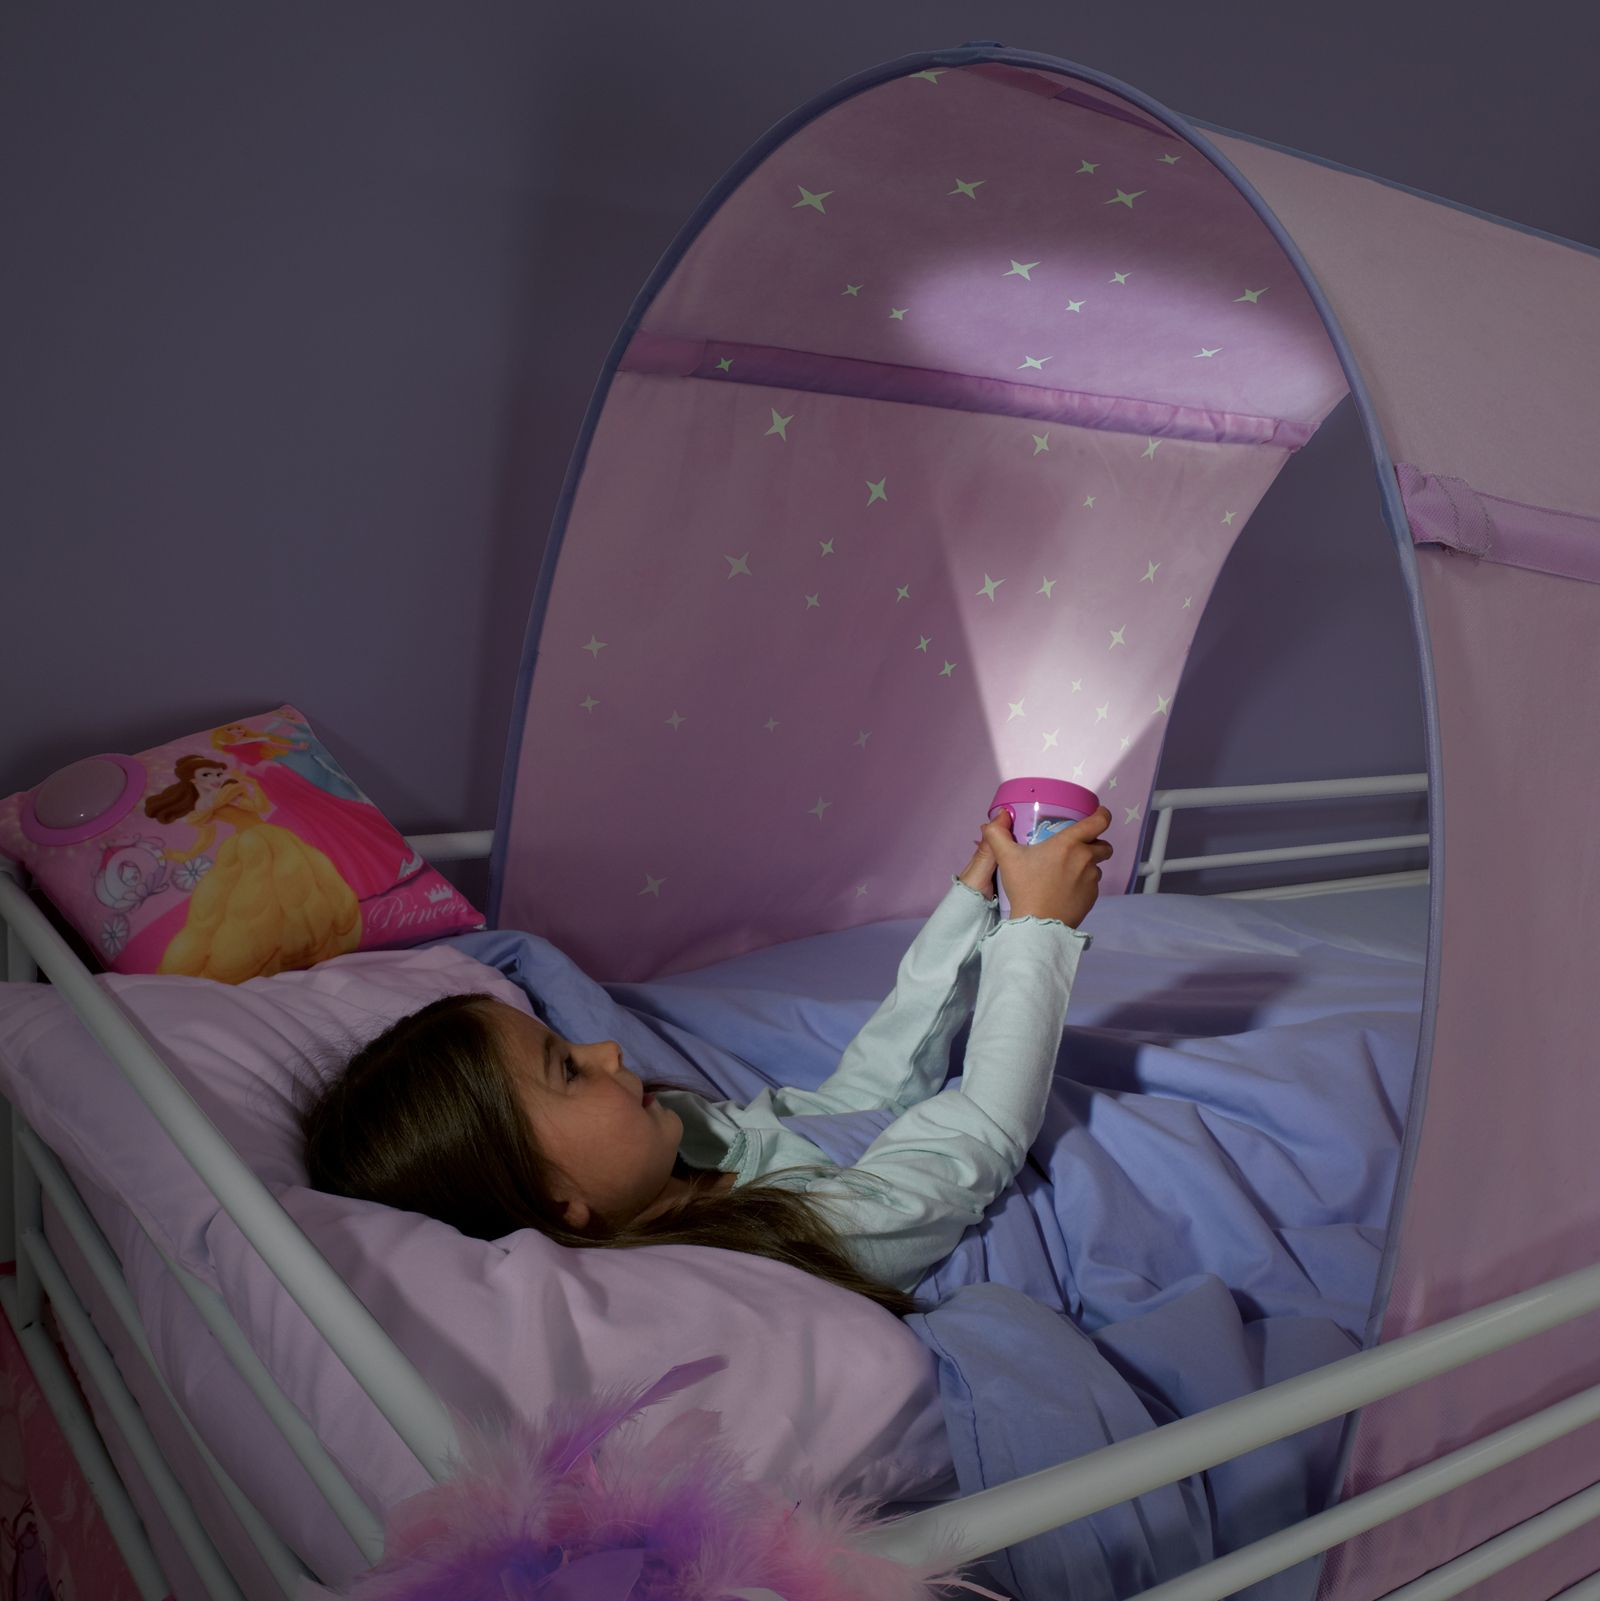 disney princess mi couchette tente de lit de cabine nouveau. Black Bedroom Furniture Sets. Home Design Ideas